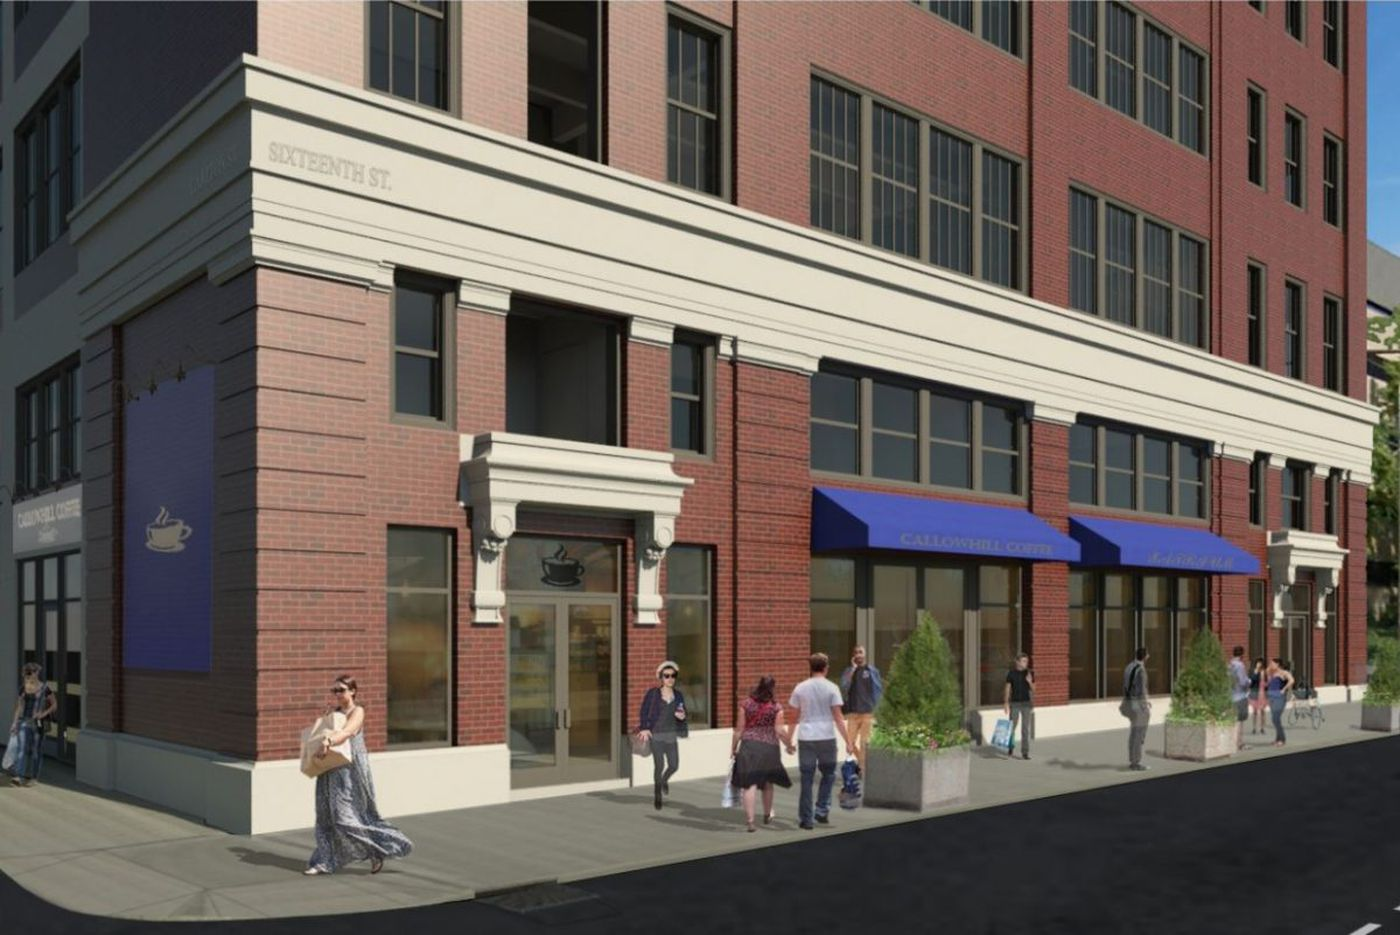 Next up for warehouse-turned-office building on Callowhill Street: Apartments